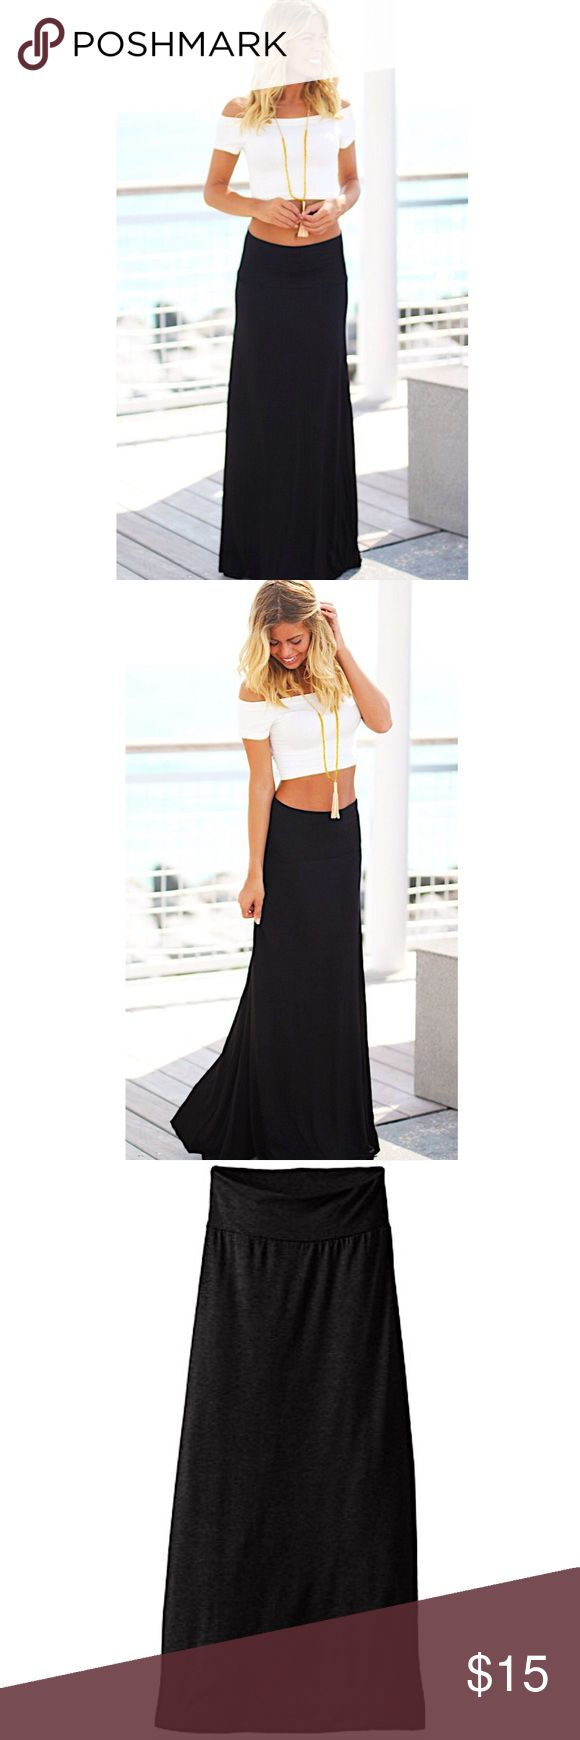 🌷Black Maxi Skirt🌷 🌷Black Maxi Skirt🌷  🌿15% off bundles 2+ items🌿                     🌸 Long 🌸 Soft material  🌸 100% cotton 🌸 Price is firm 🌸 Length- 36 in.   ✖️brand for exposure✖️  Tags: Skirt, Long, Urban Outfitters, Black, Maxi, Skater skirt, Dainty, Trendy, Cute Brandy Melville Skirts Maxi